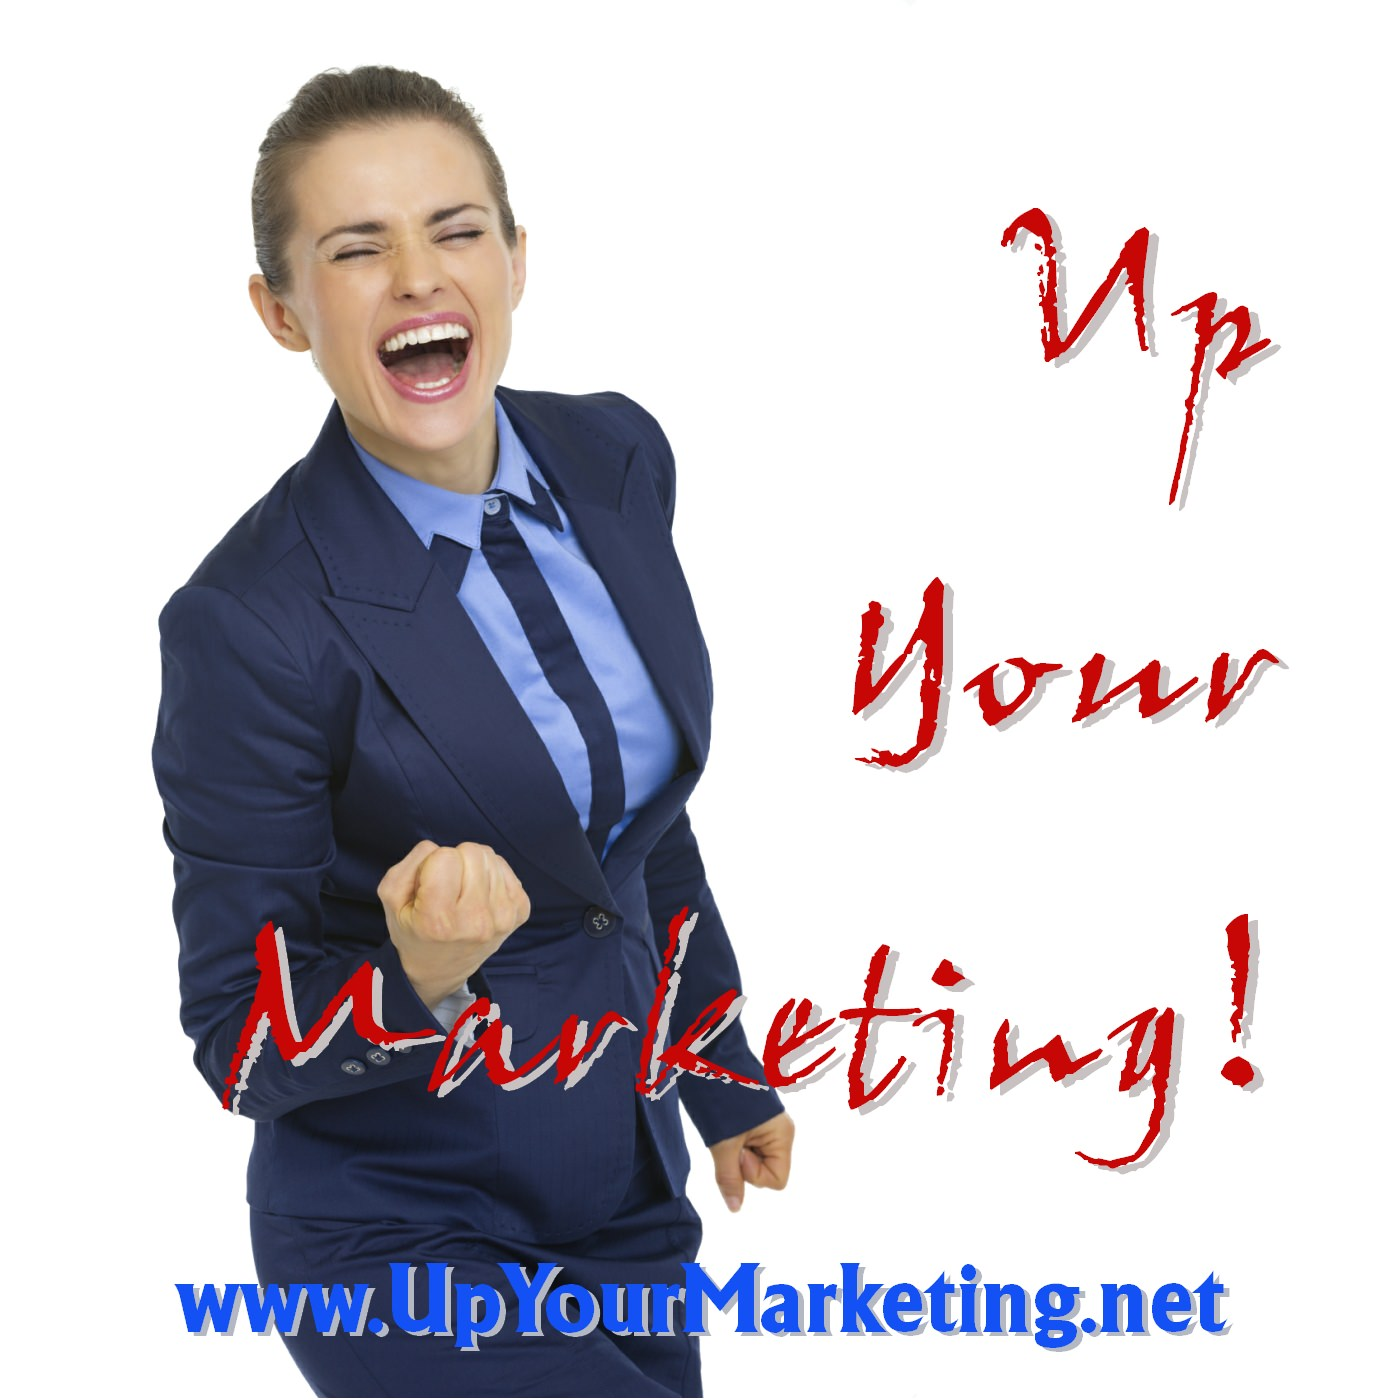 Up Your Marketing!